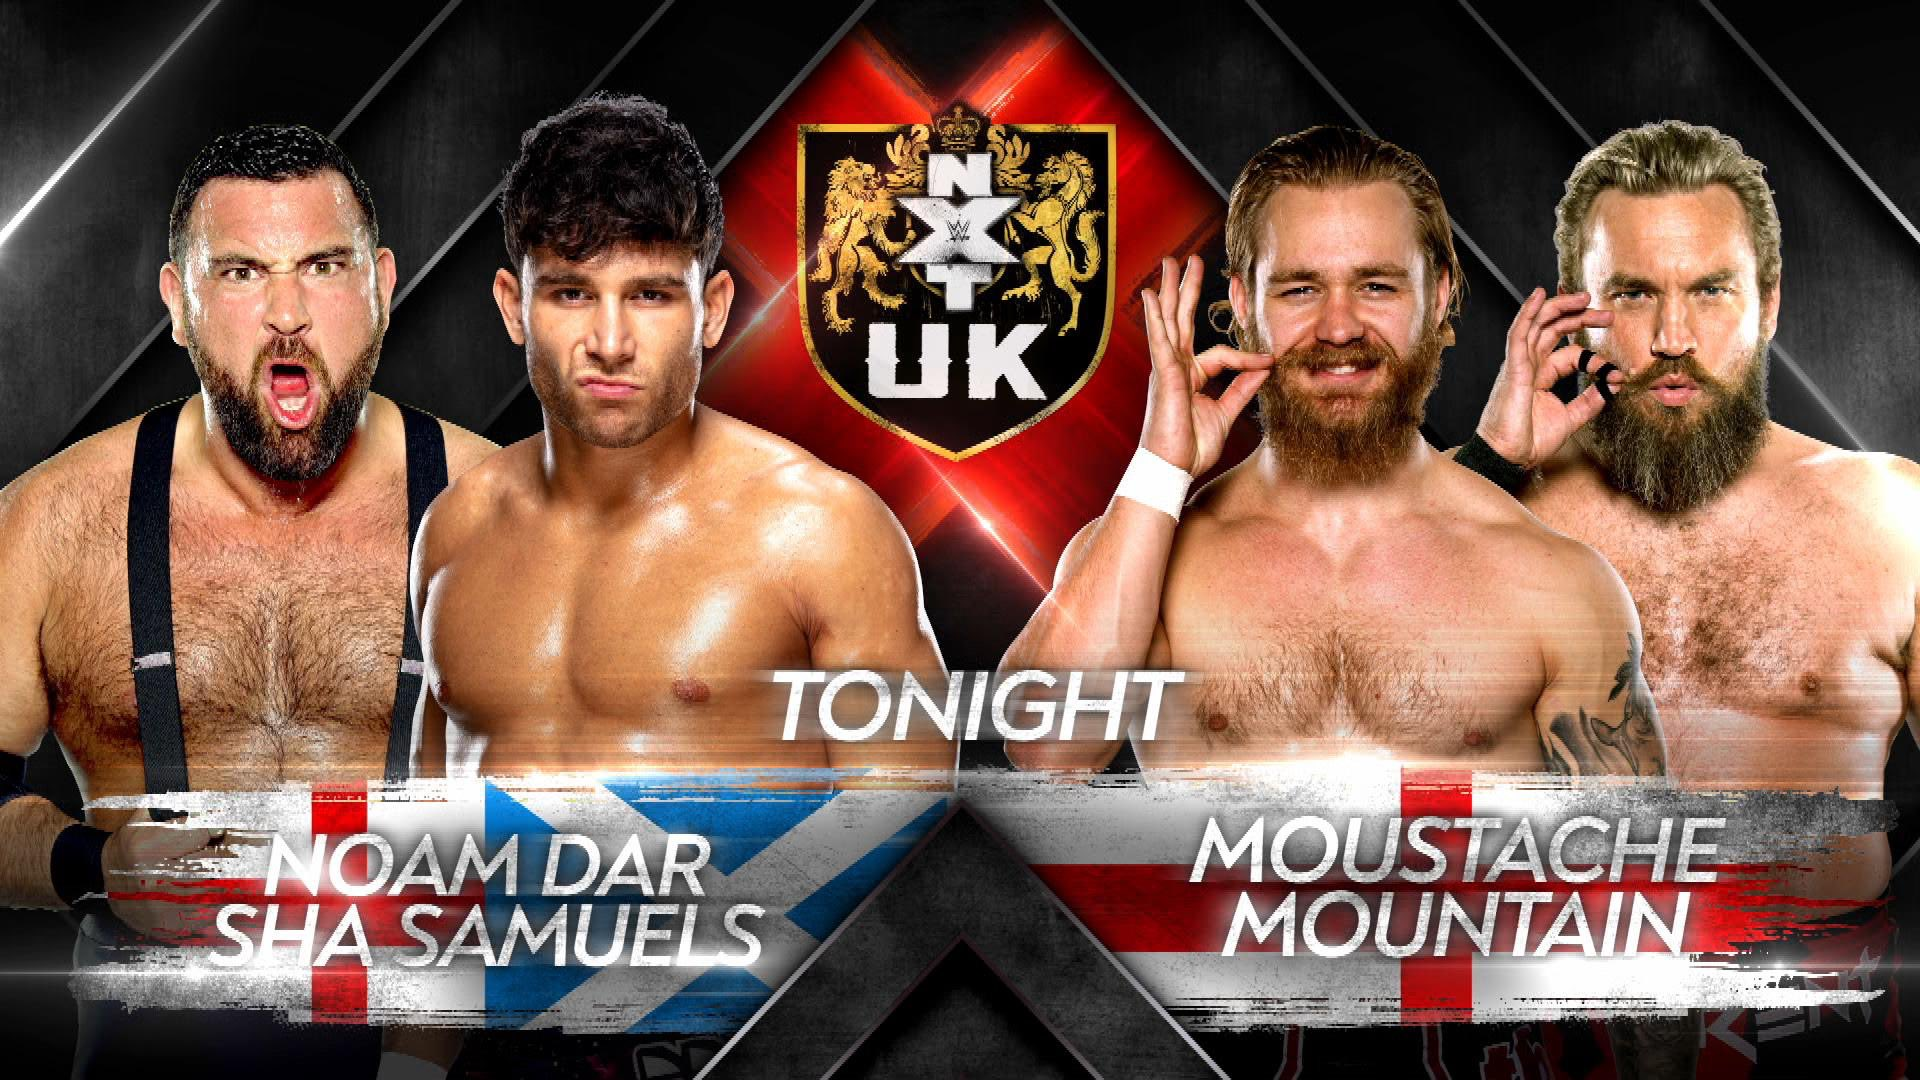 WWE NXT UK Results (4/22): Moustache Mountain Reunite, Joe Coffey Vs. Eddie Dennis, More